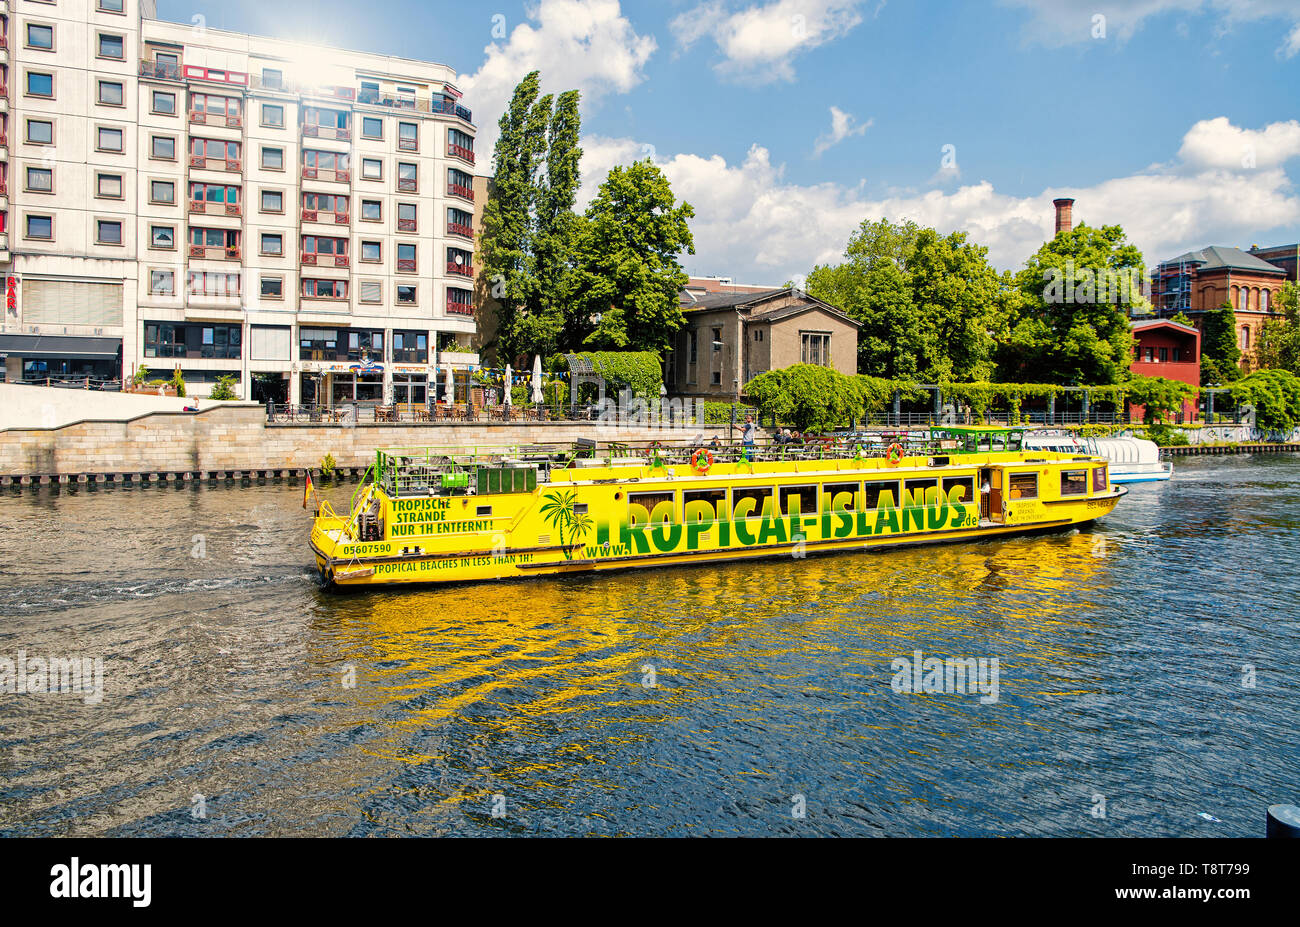 Berlin, Germany - May 31, 2017: tour by river on yellow boat with tourists along city canal on skyline background. Travelling and trip, concept - Stock Image